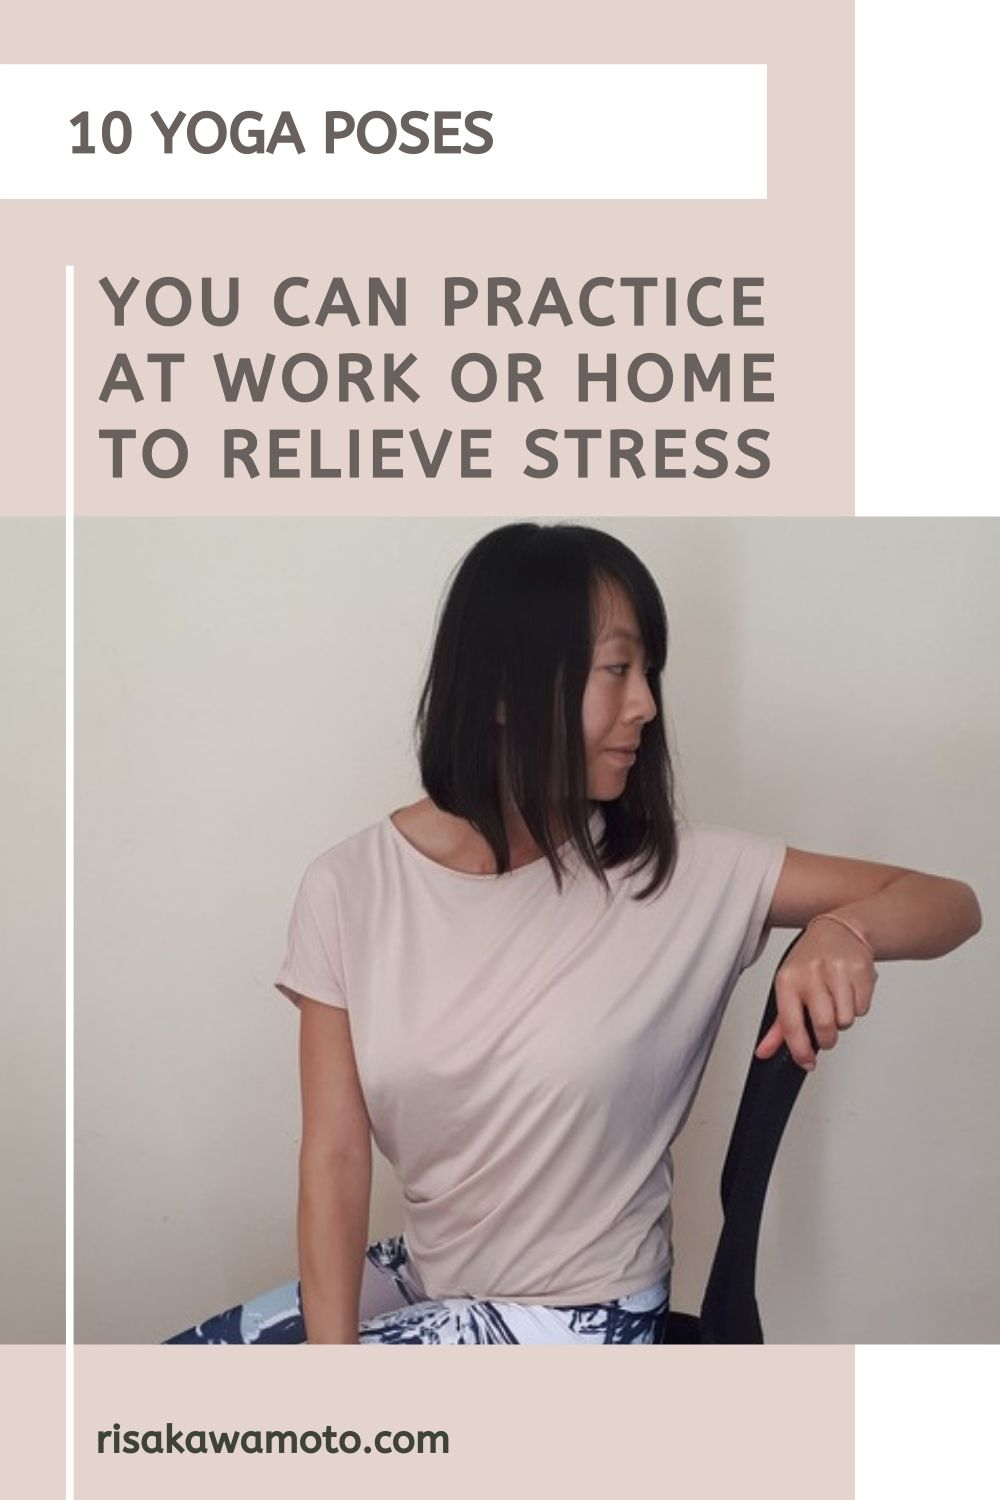 Office Yoga - Yoga Poses to Relieve Stress at Work